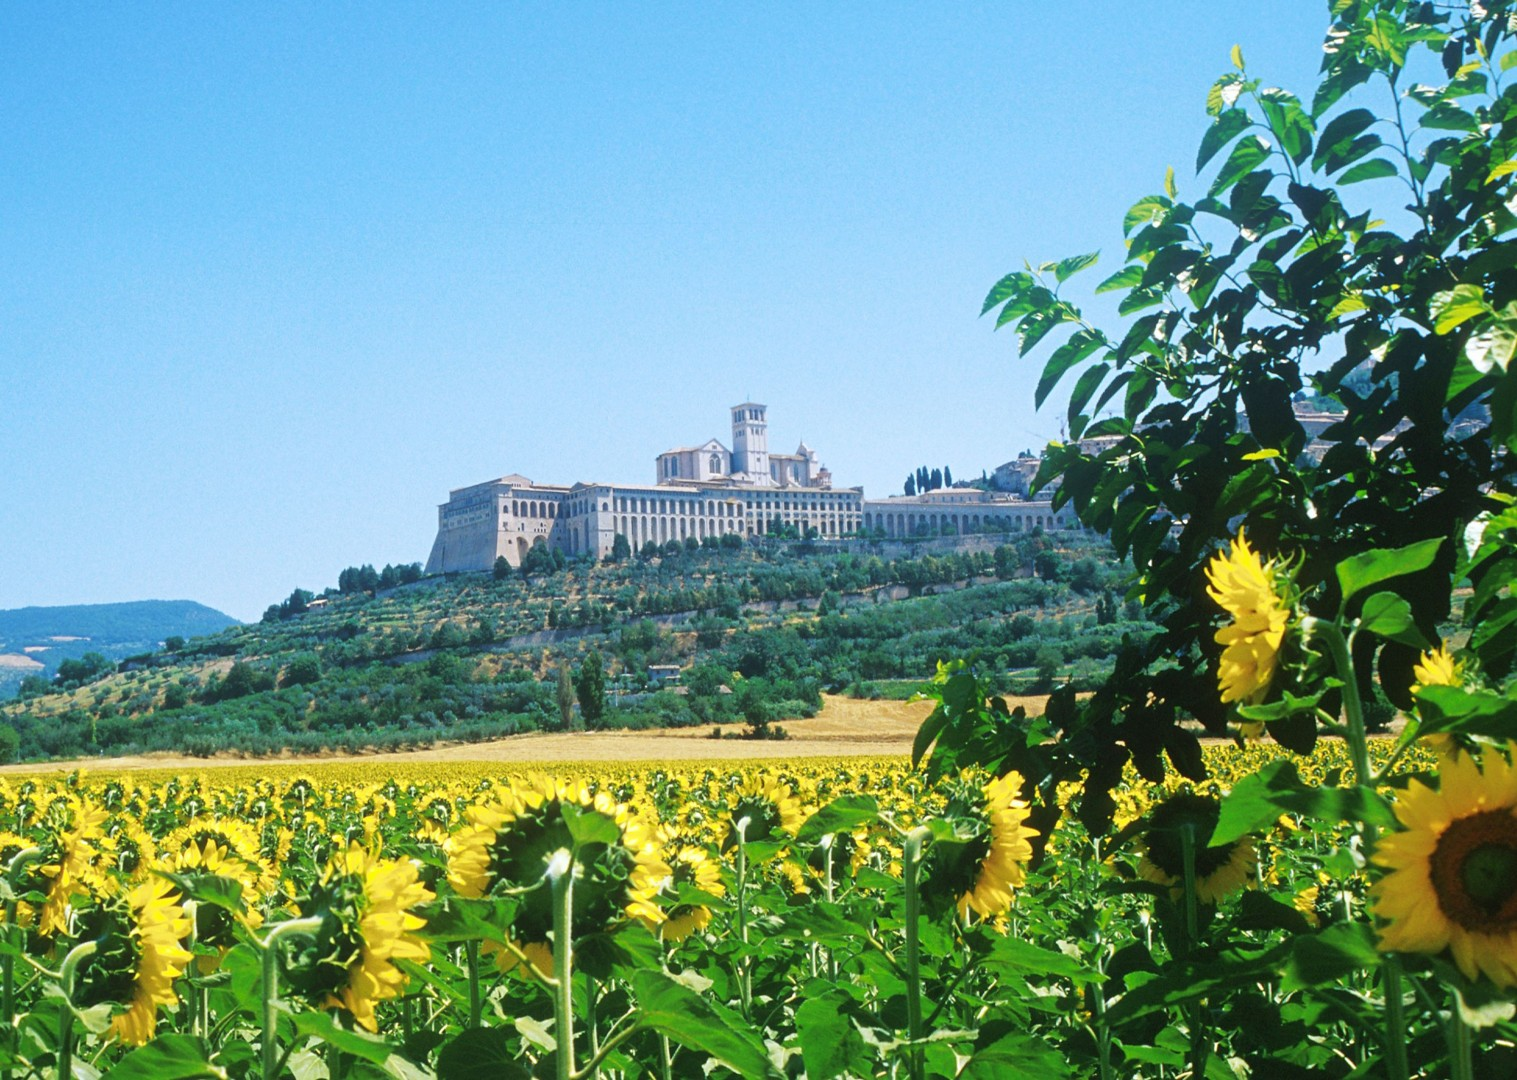 basilica-of-assisi-leisure-cycling-holiday-italy-green-heart-of-umbria.jpg - Italy - Green Valley of Umbria - Self-Guided Leisure Cycling Holiday - Leisure Cycling